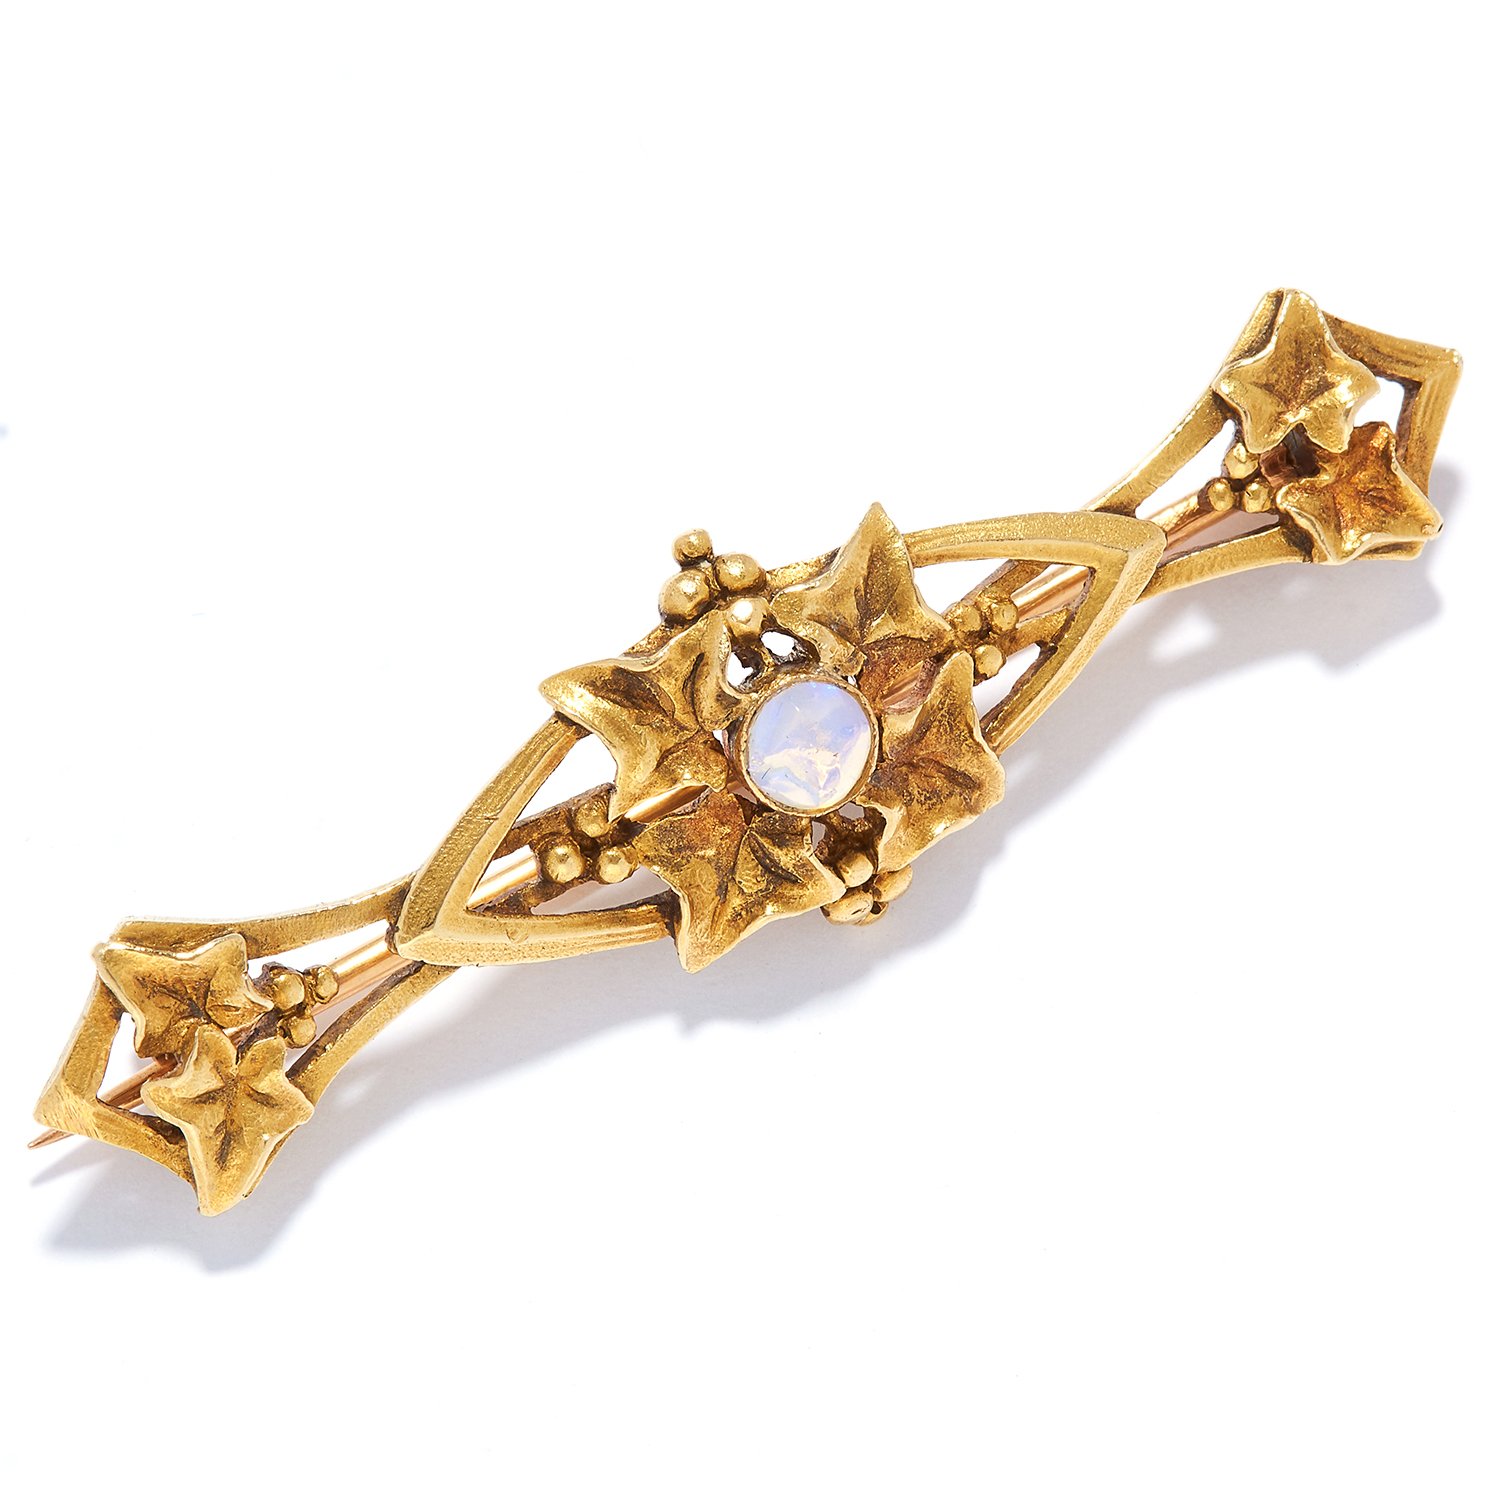 AN OPAL BAR BROOCH, FRENCH in high carat yellow gold, in Art Nouveau design set with a cabochon - Bild 2 aus 2